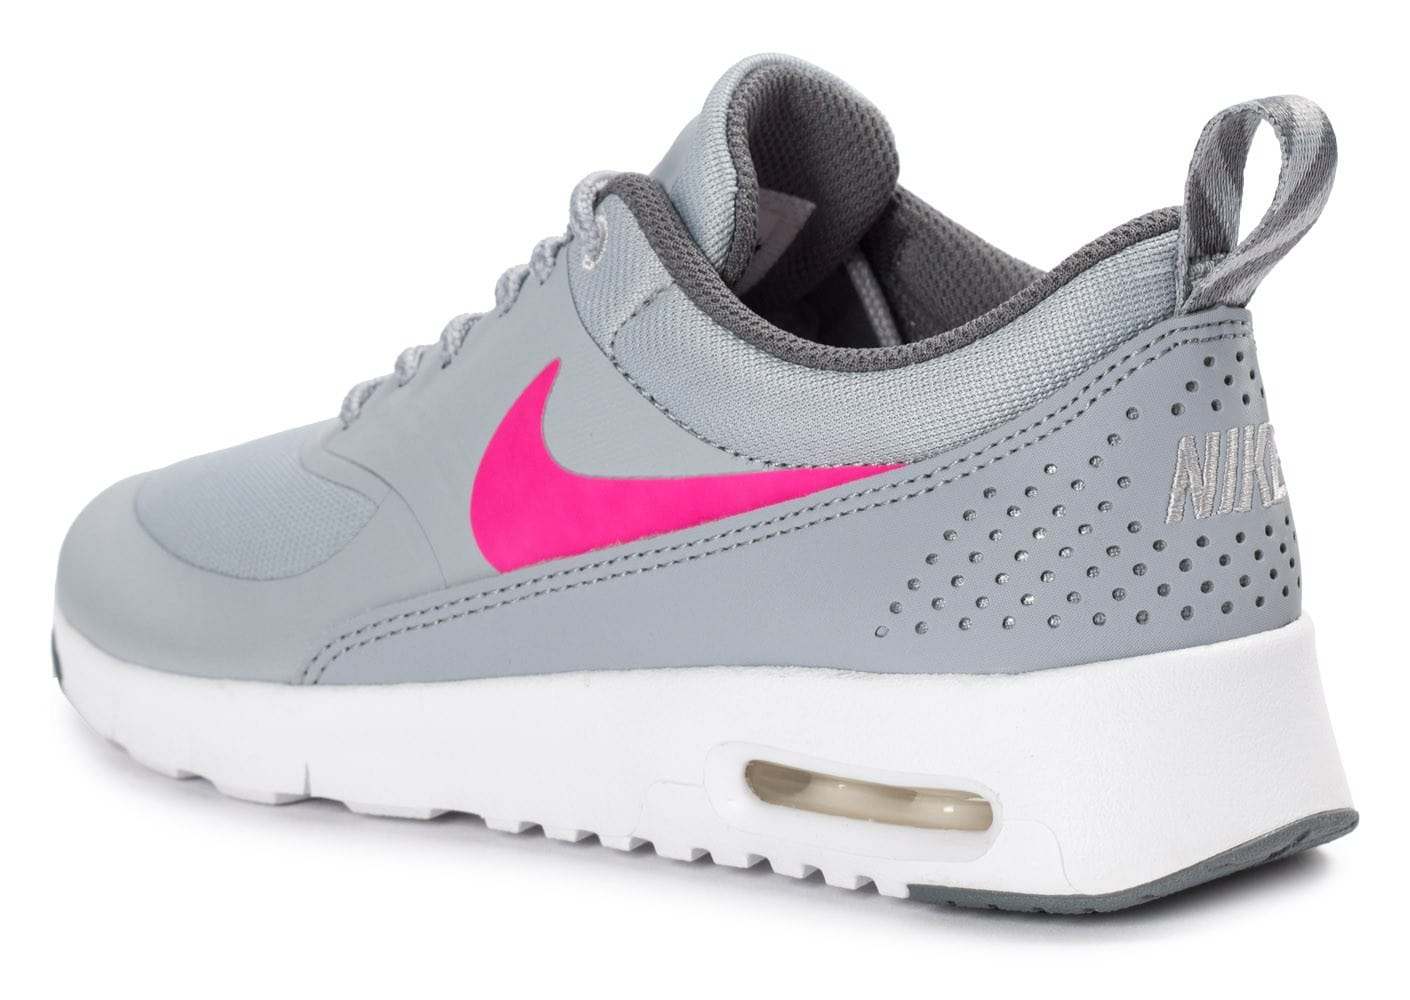 brand new b9960 0ccfe ... Chaussures Nike Air Max Thea Junior grise et rose vue arrière ...